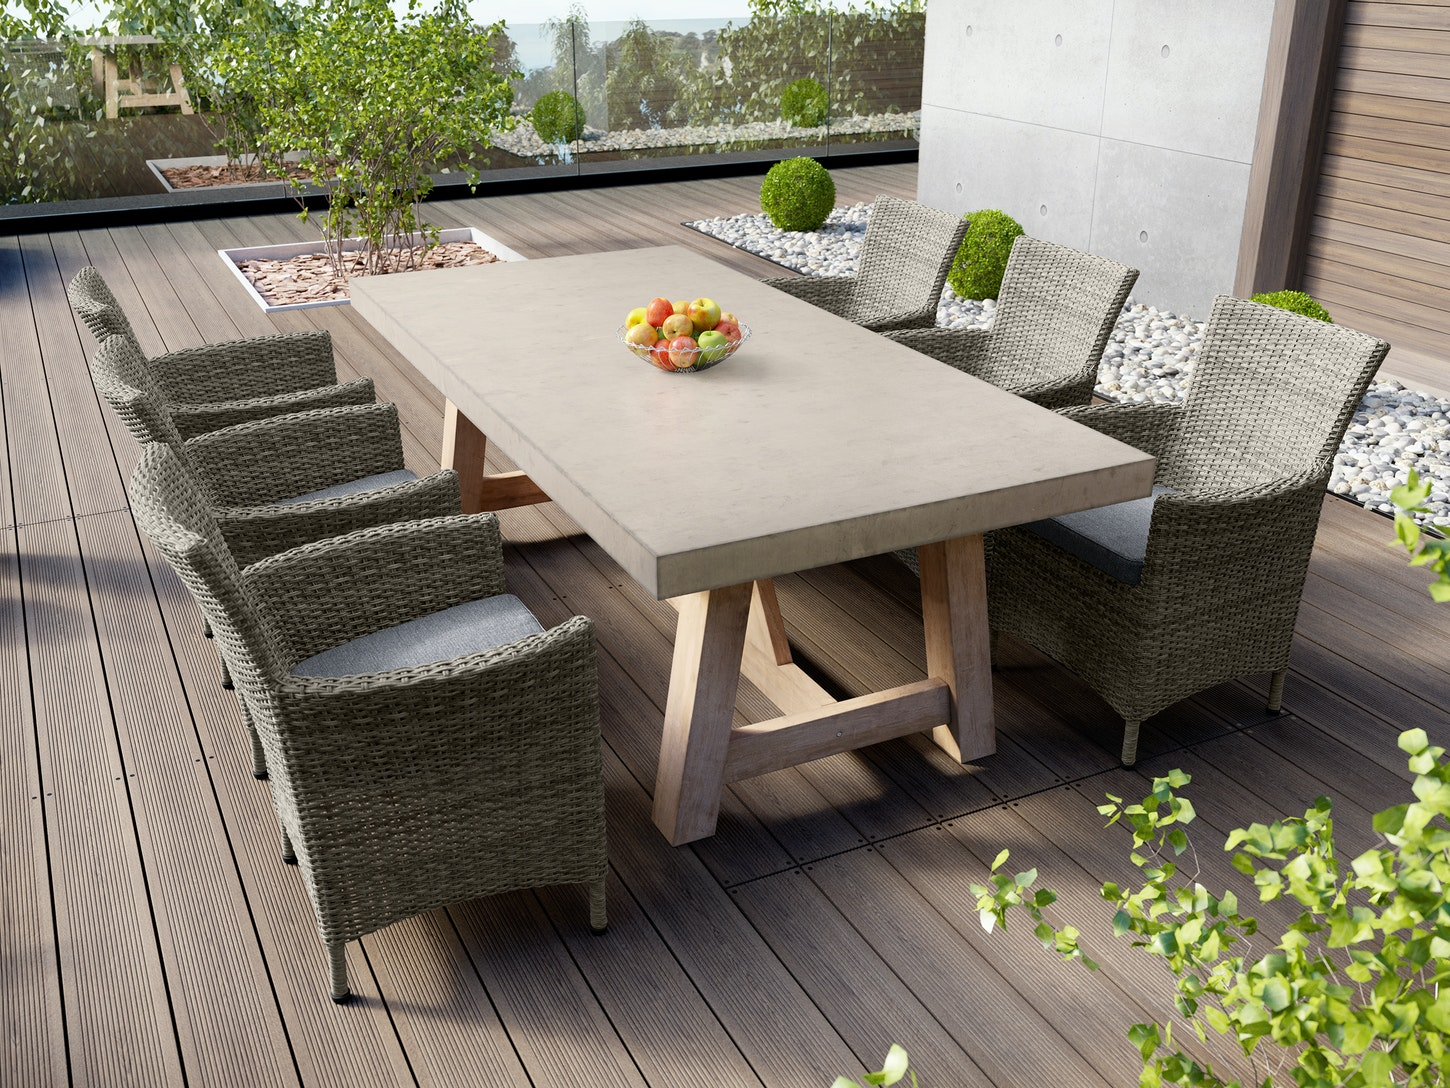 Tate concrete outdoor dining table with elba rattan chairs dining sets outdoor furniture home outdoor living trade tested